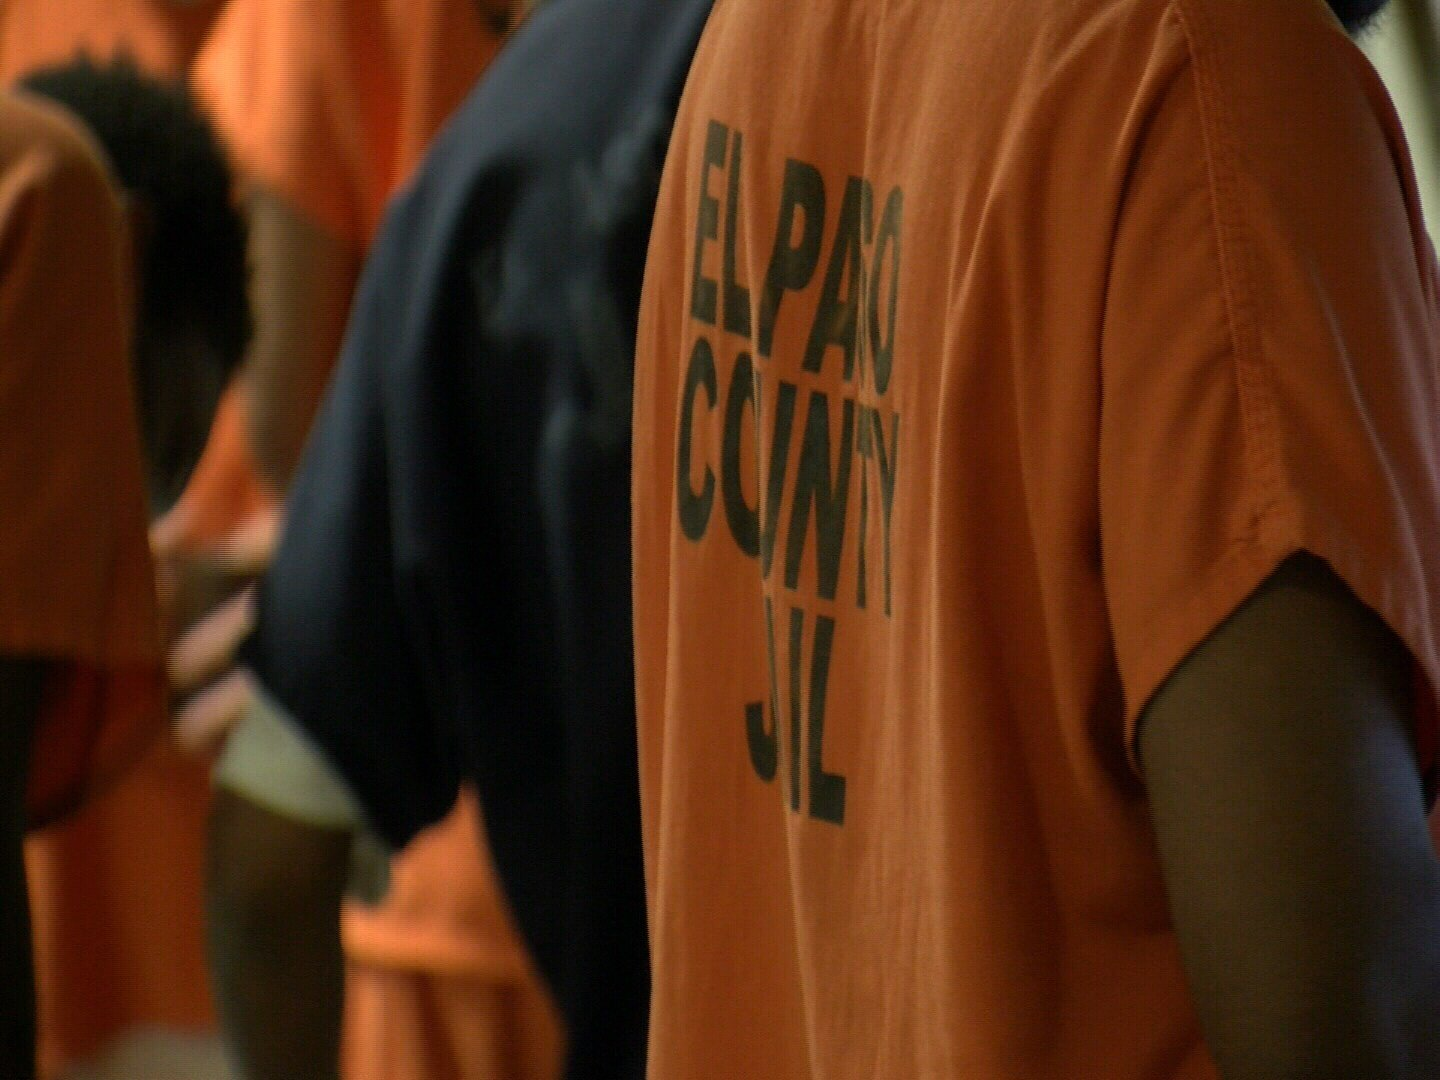 Colorado lawmakers will debate a series of new bills aimed at relieving overcrowded county jails